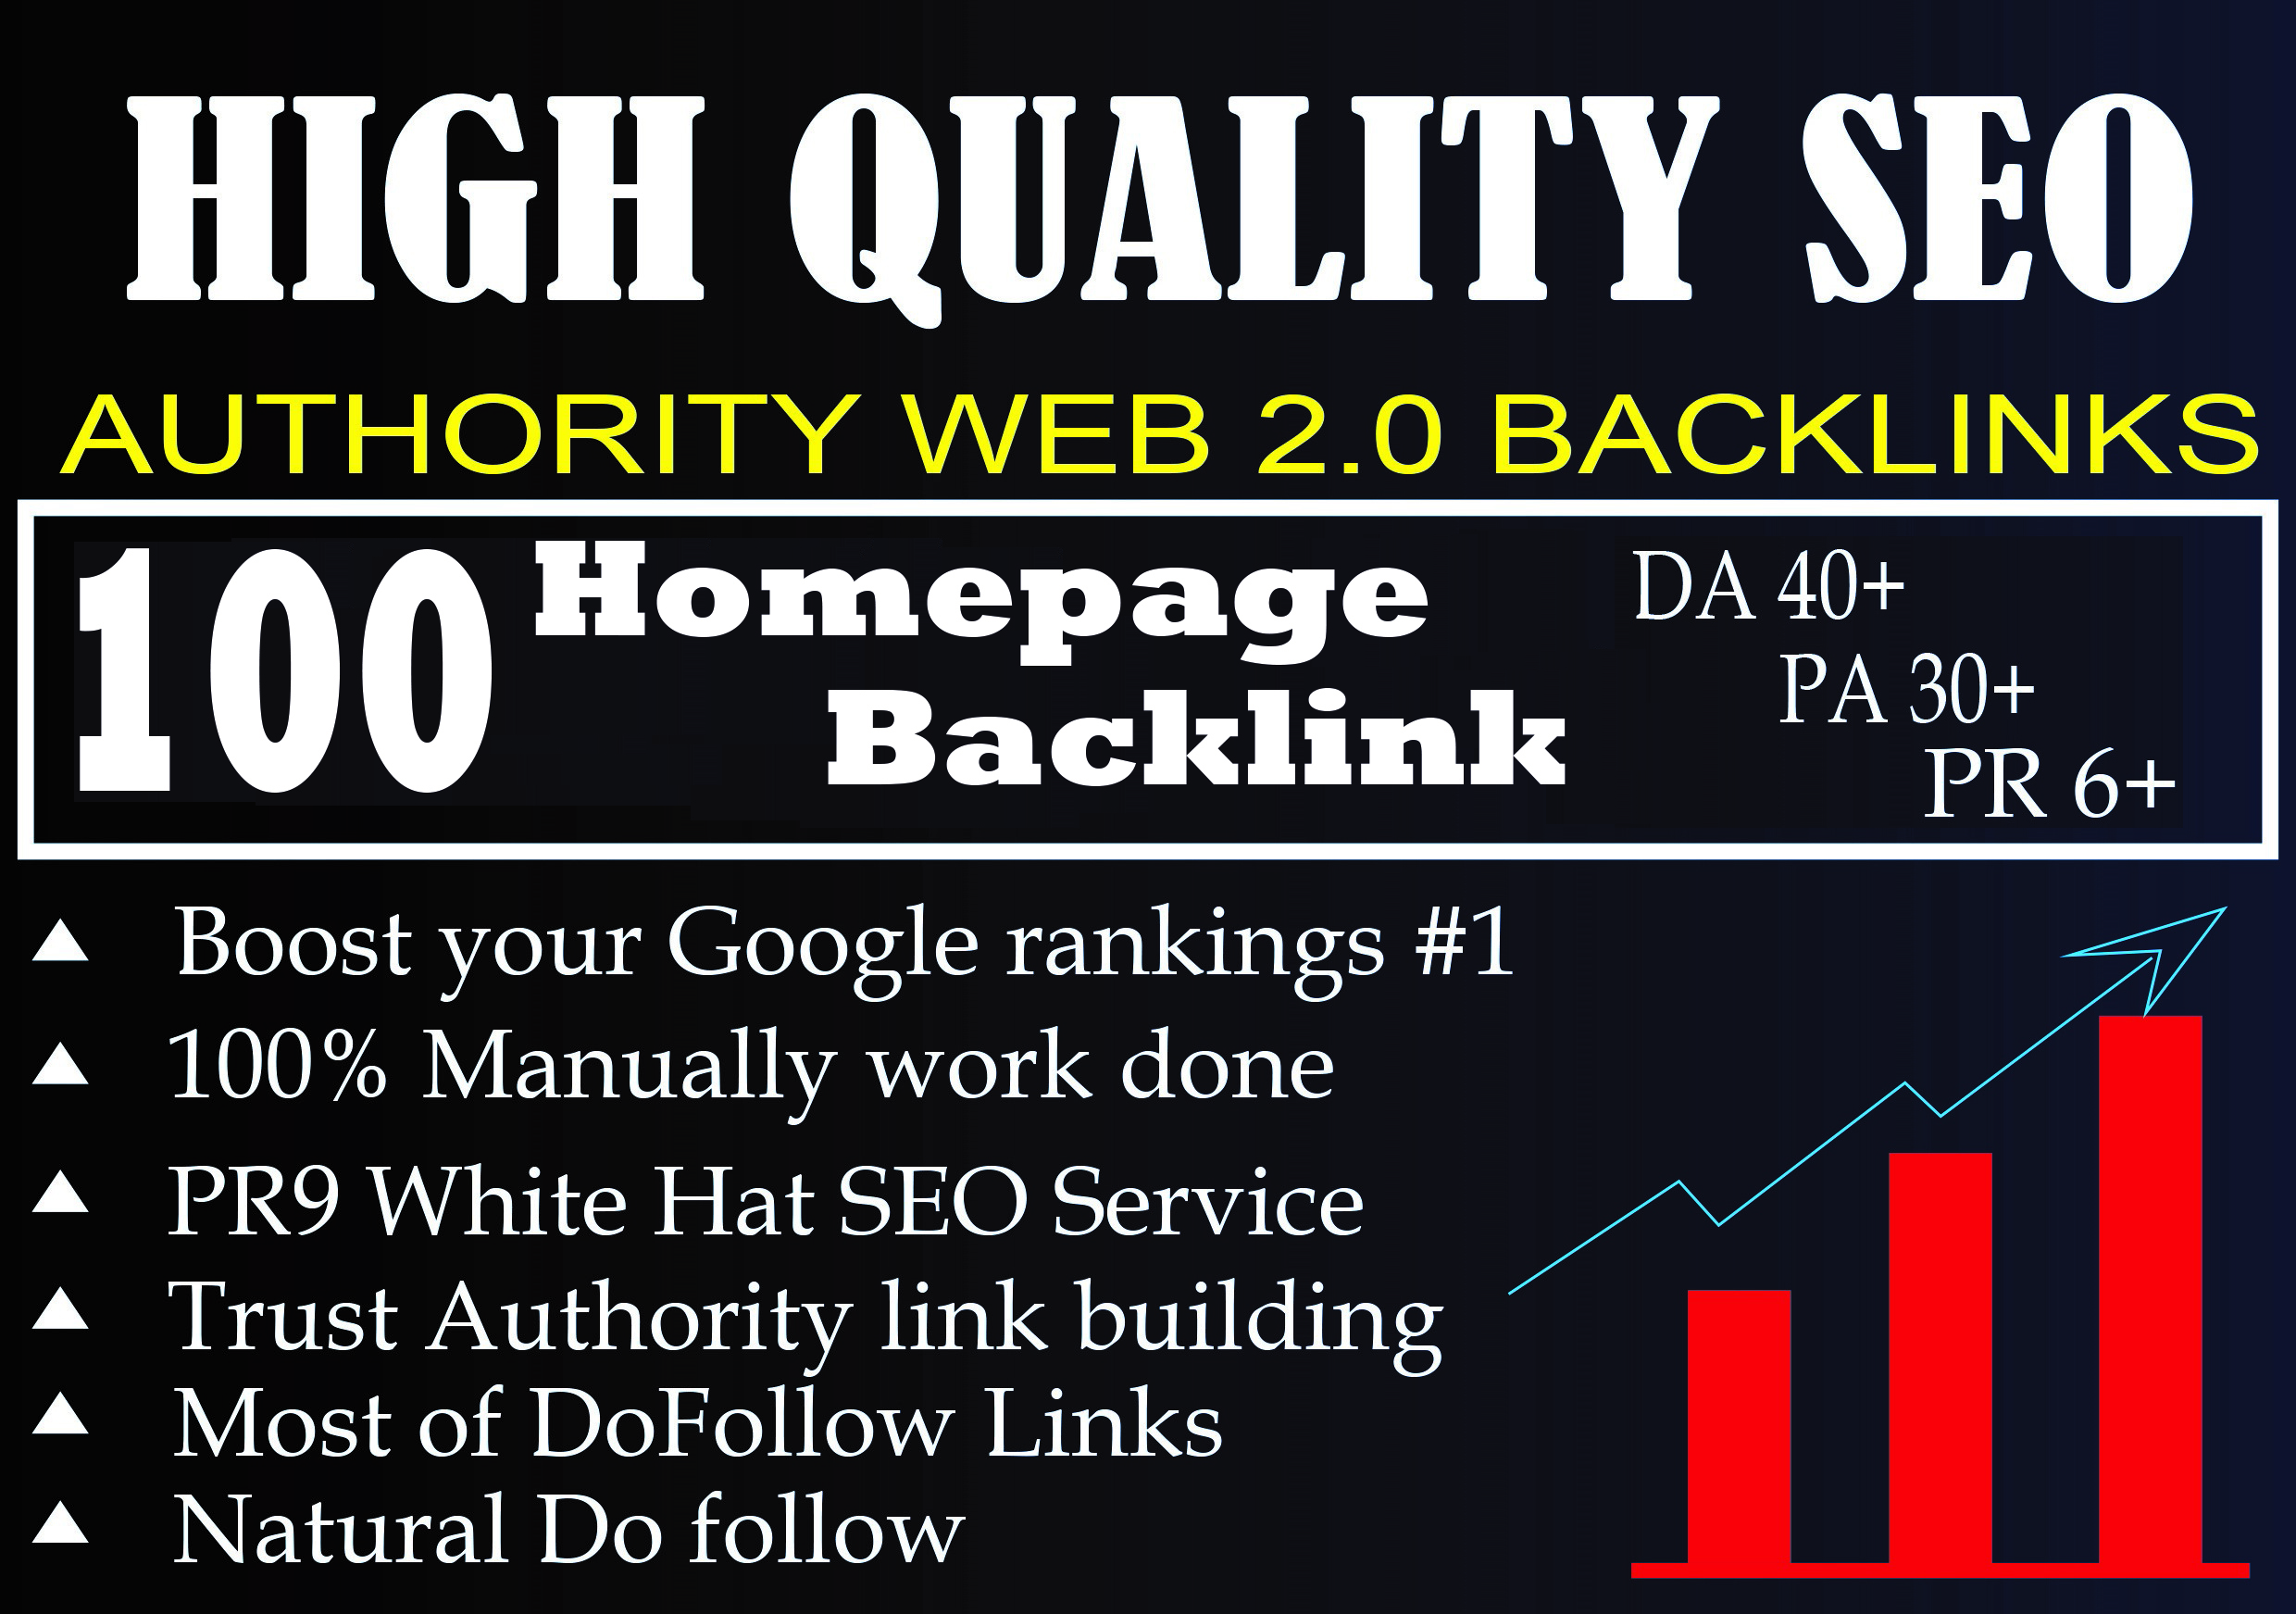 DA 40+ PA 30+ PR 6+ Web2.0 100 homepage Backlink in 100 dofollow in unique site